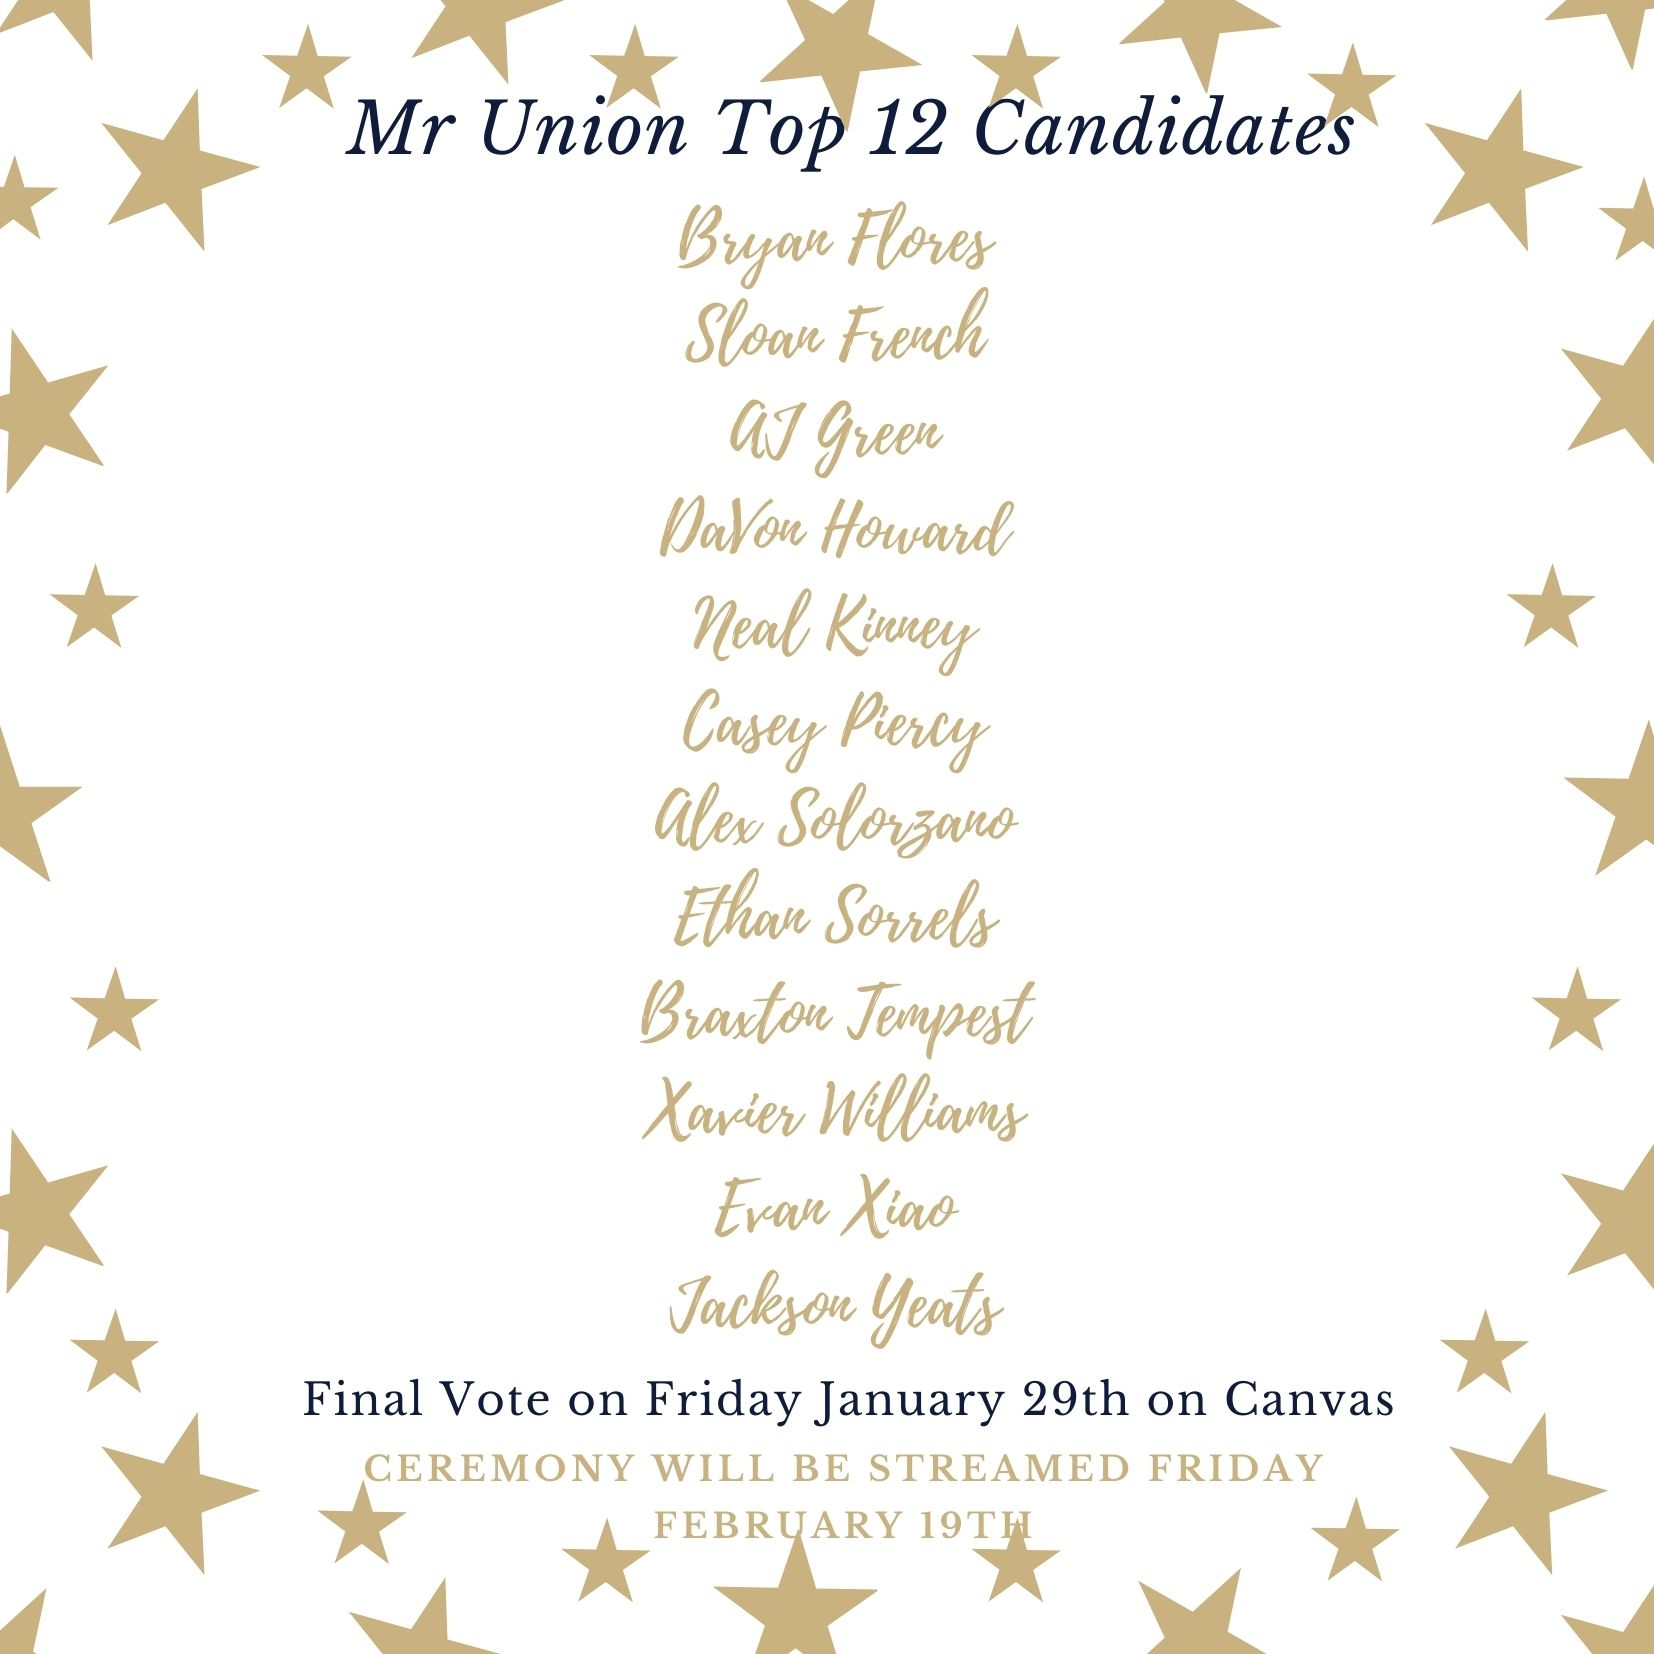 Congratulations to these Top 12 Mr. and Miss Union candidates! Voting takes place Friday, January 29. The event will be streamed February 19.